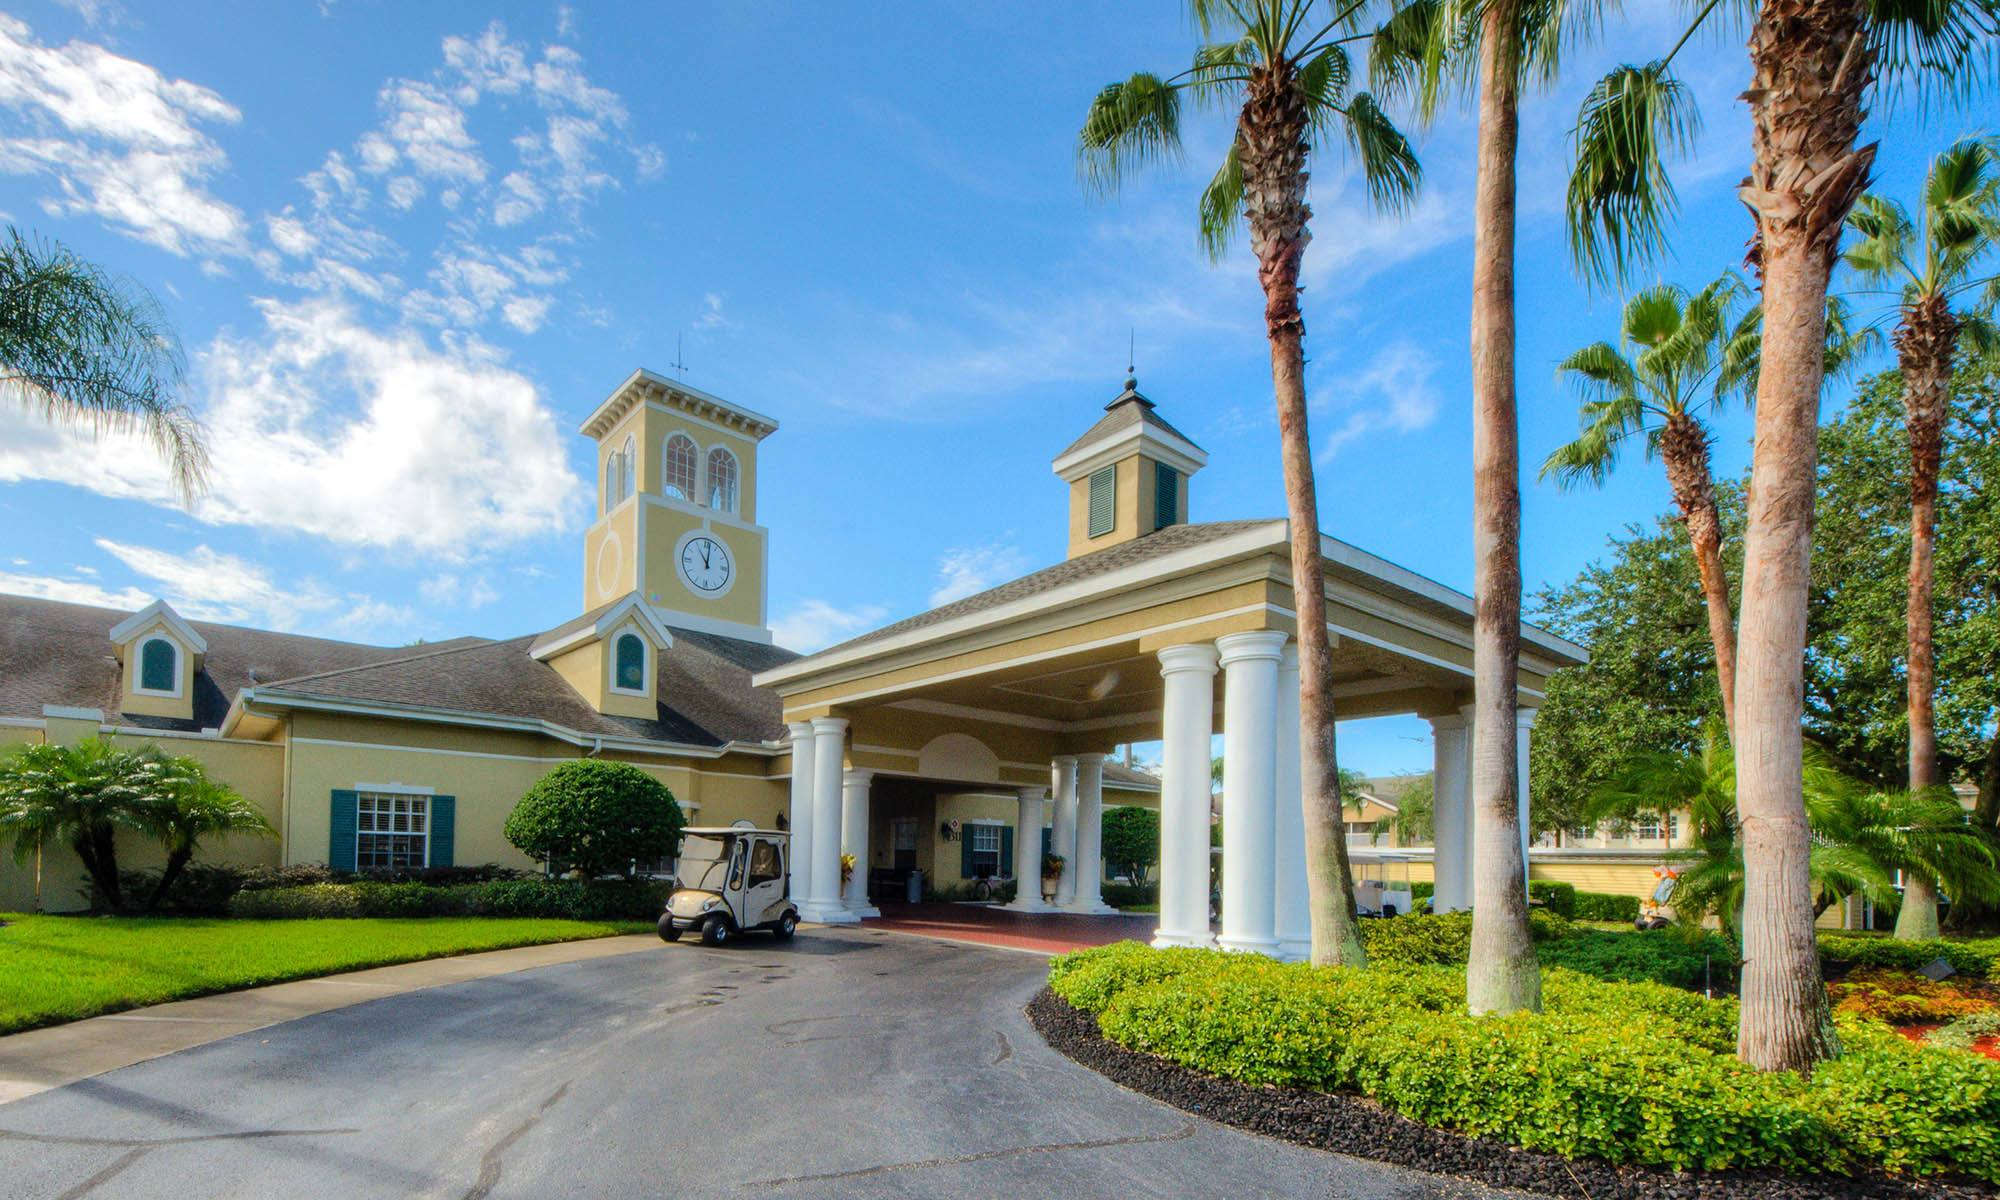 Sun City Center senior living has a wonderful club house